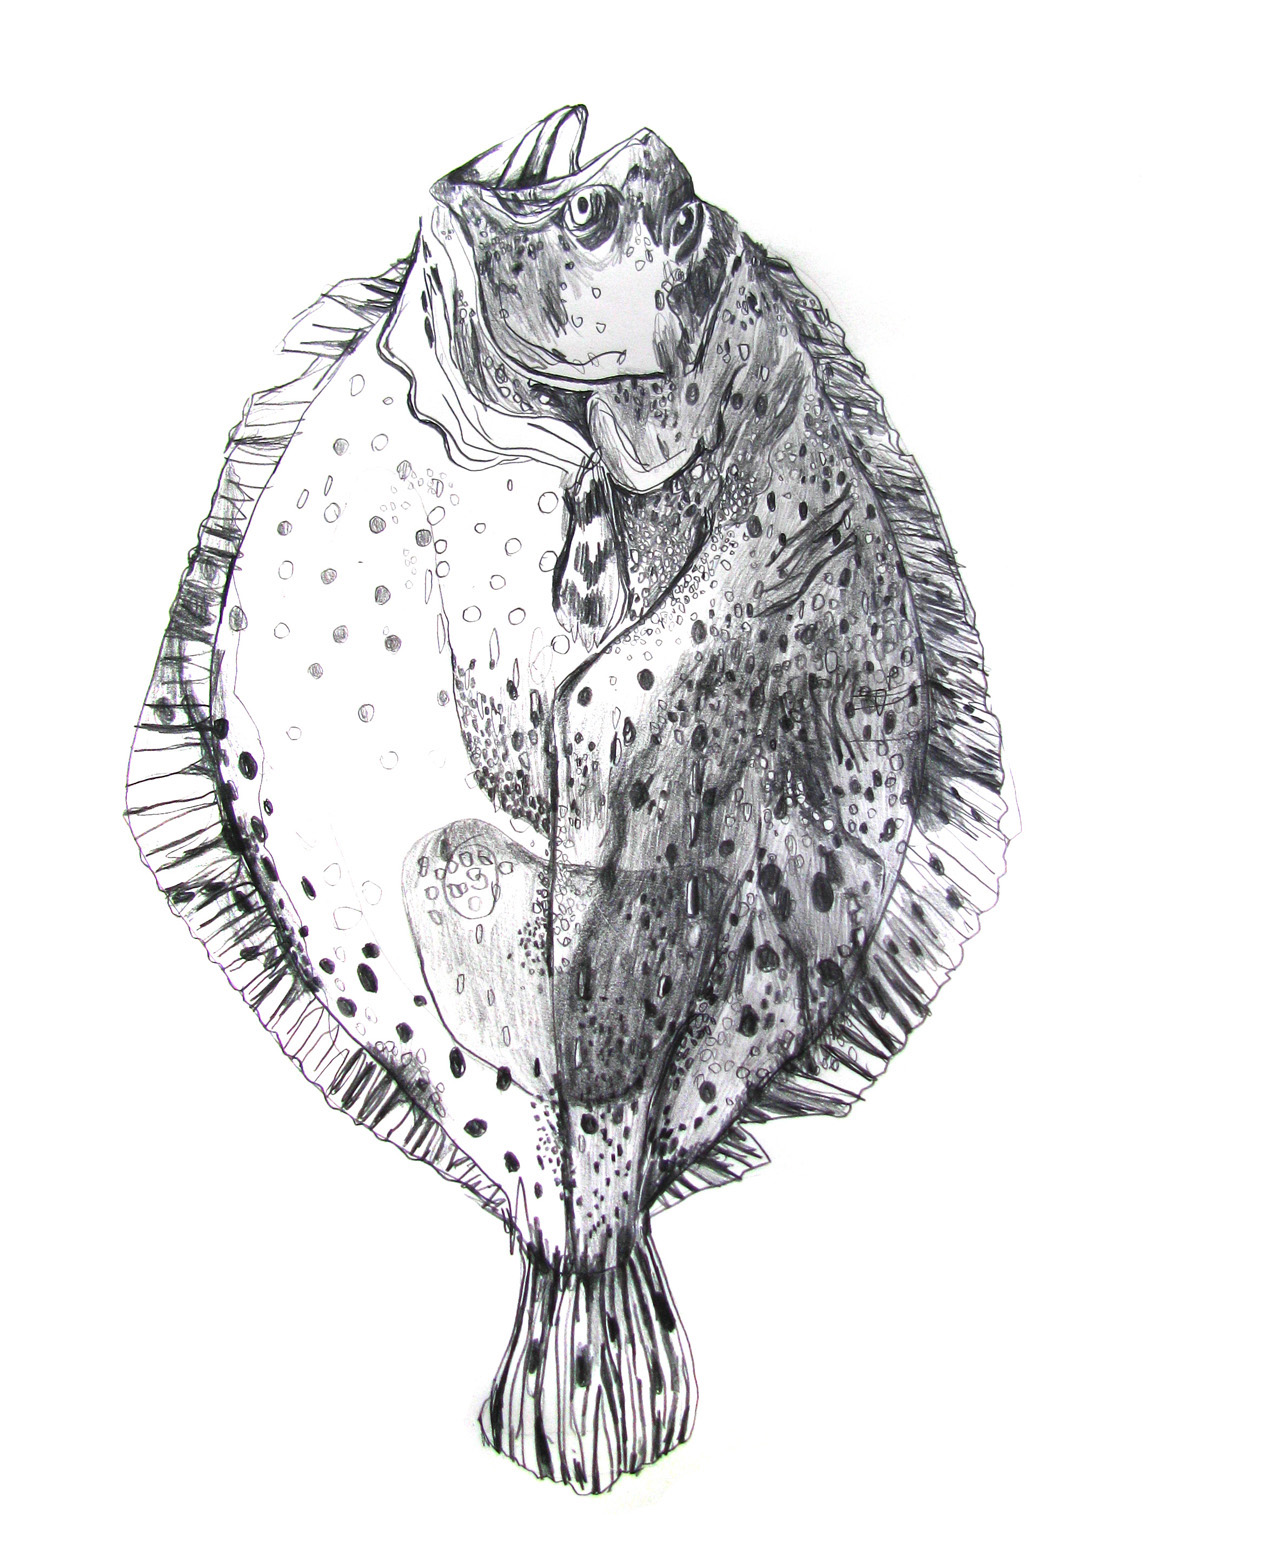 A Turbot (artists's own).